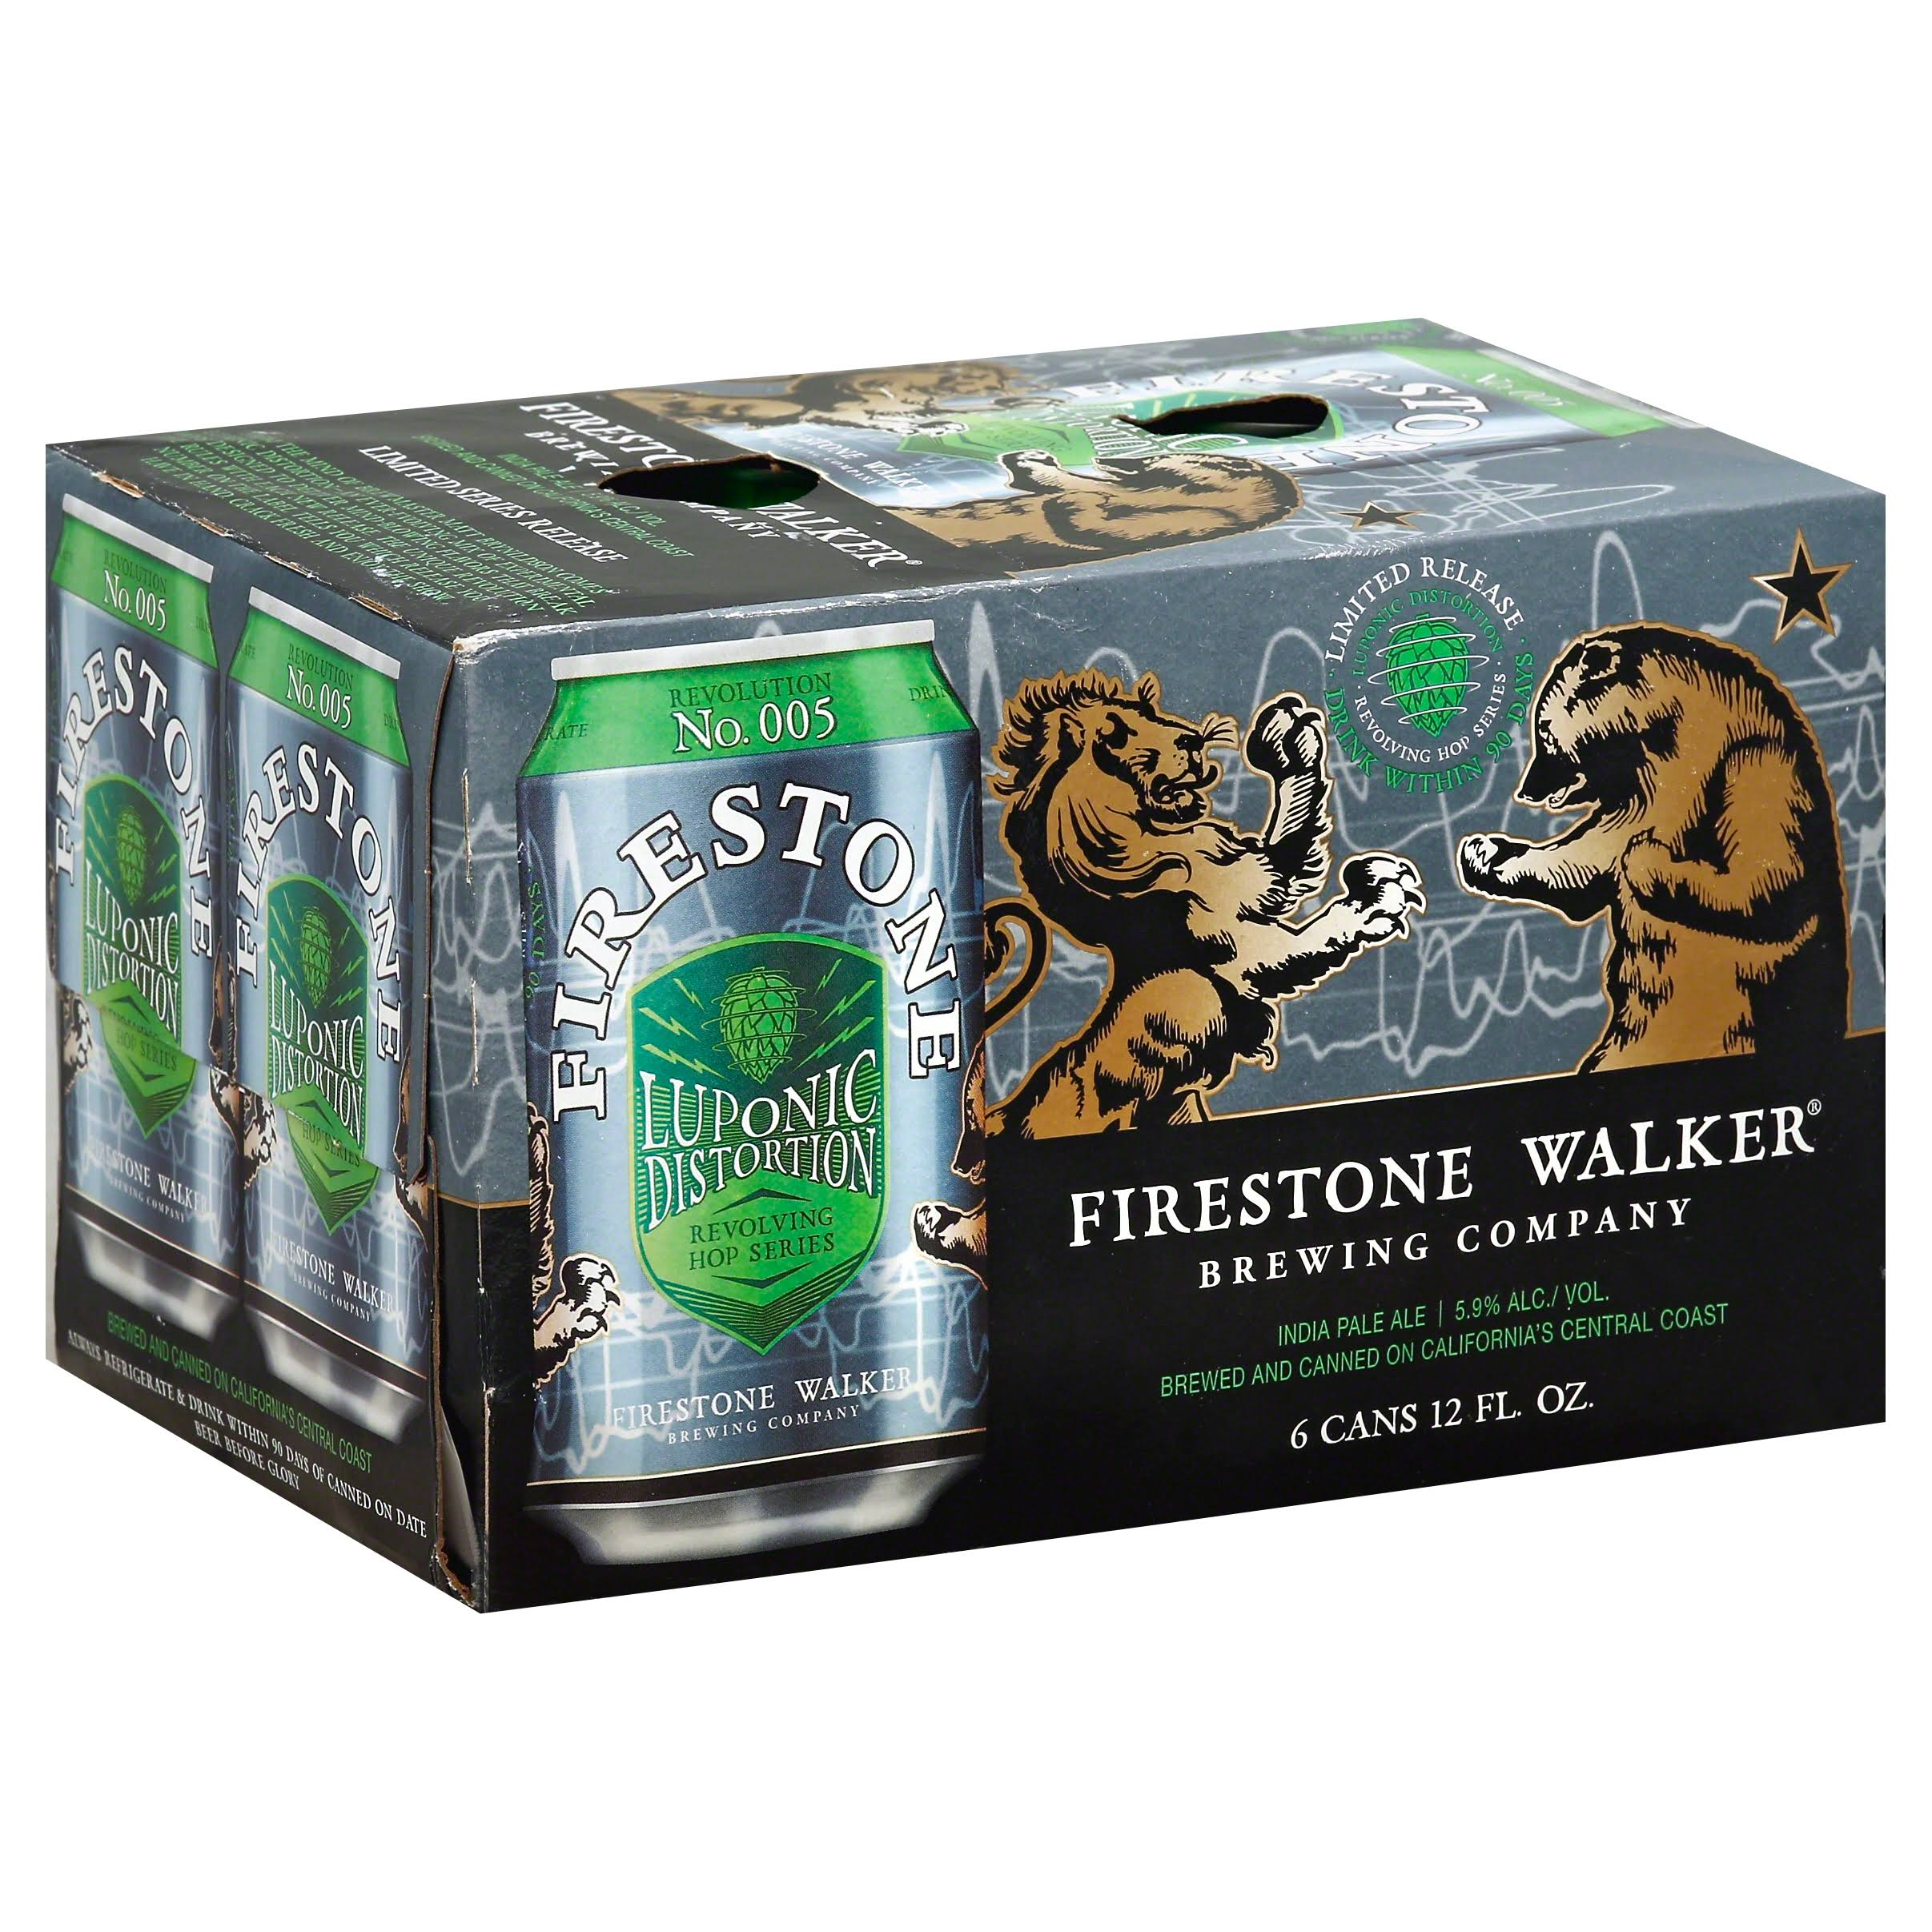 Firestone Walker Revolving Hop Series Beer, India Pale Ale, Luponic Distortion - 6 pack, 12 fl oz cans